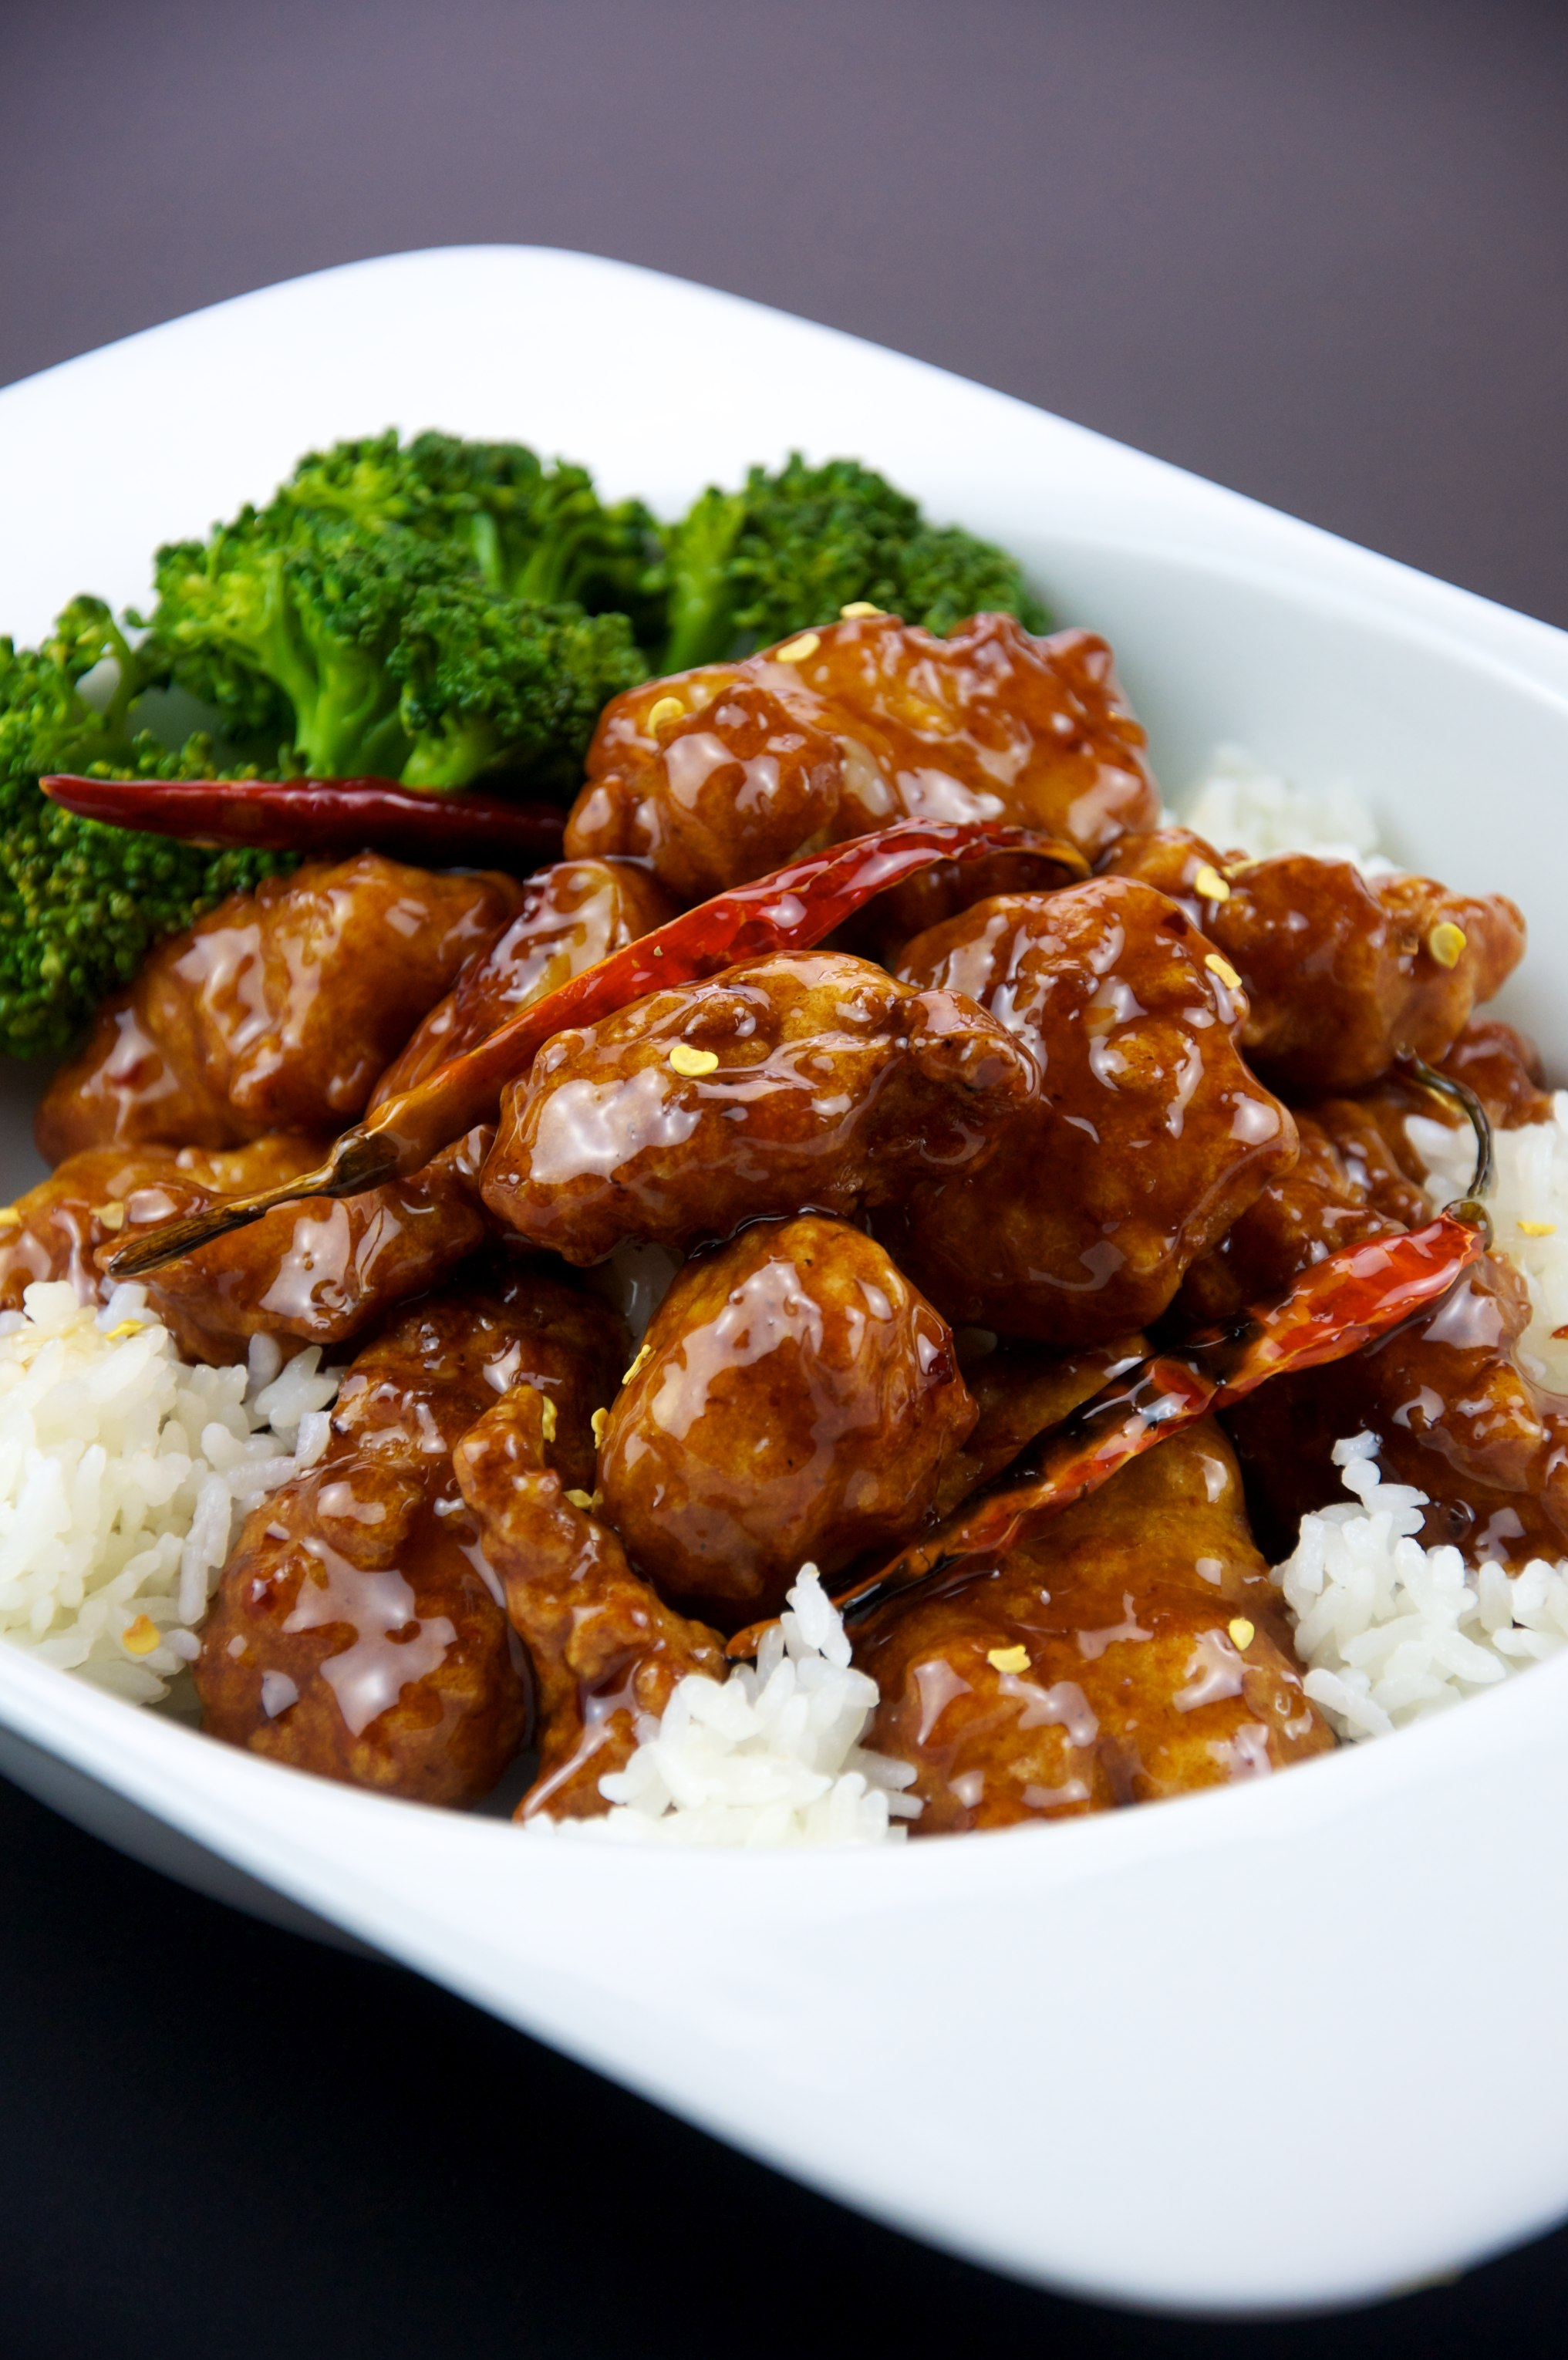 Description Flickr preppybyday 4665999863--General Tso's Chicken.jpg